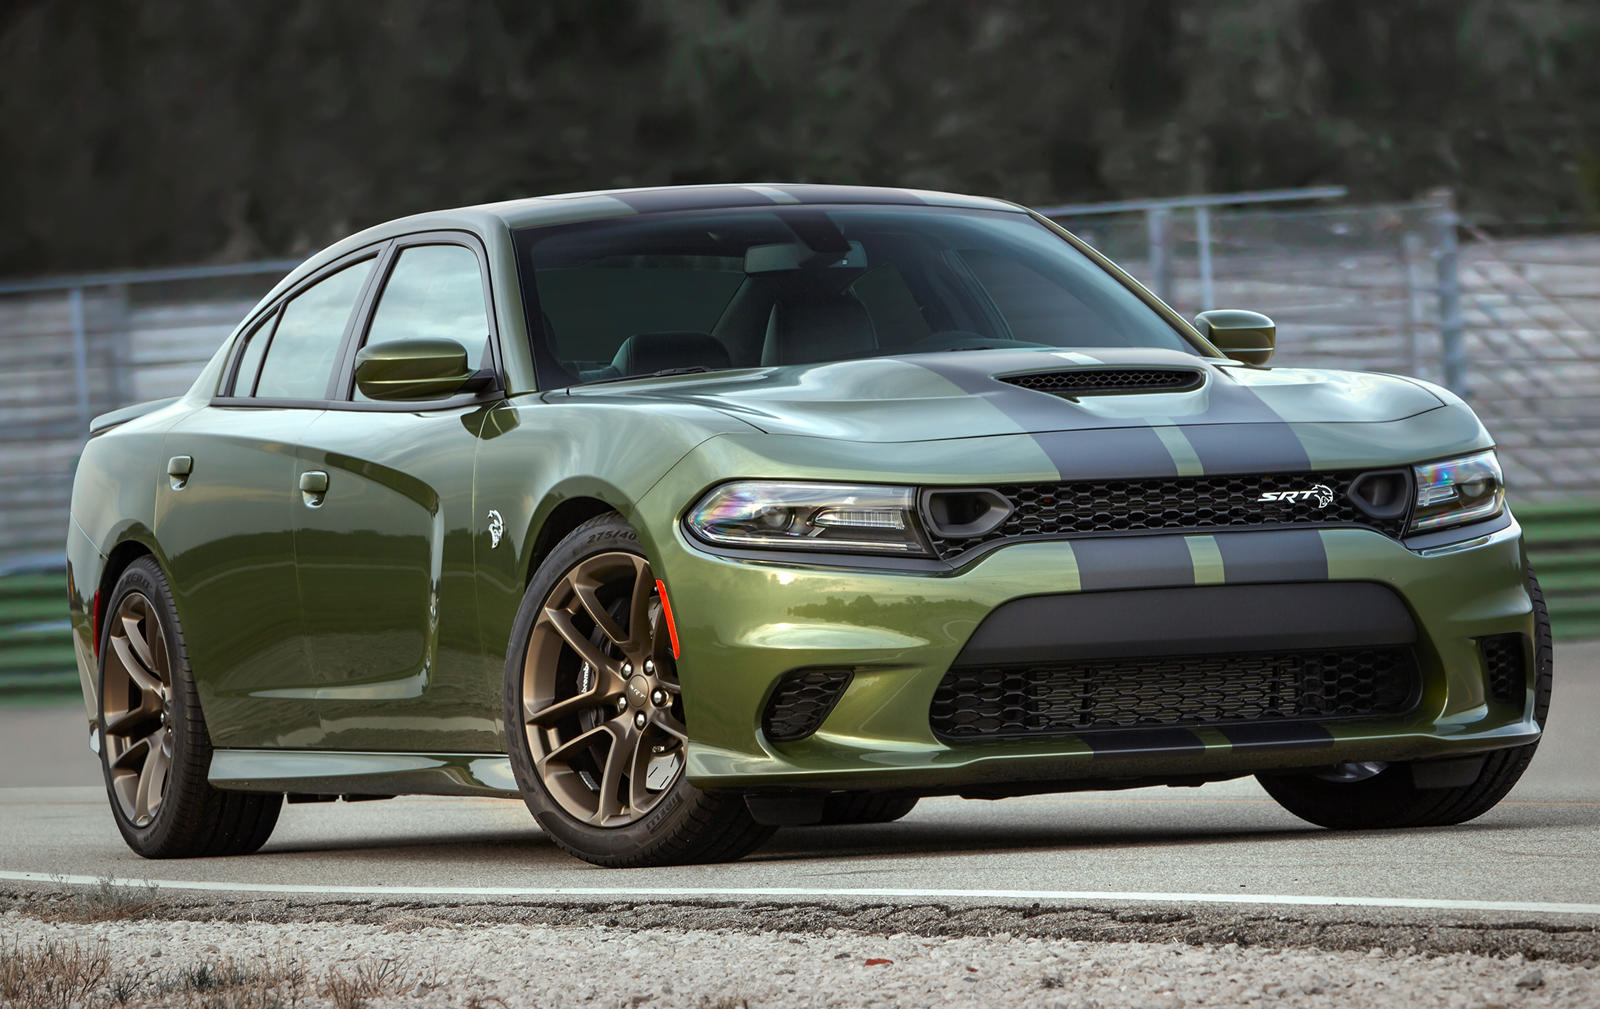 27 New 2020 Dodge Charger Picture